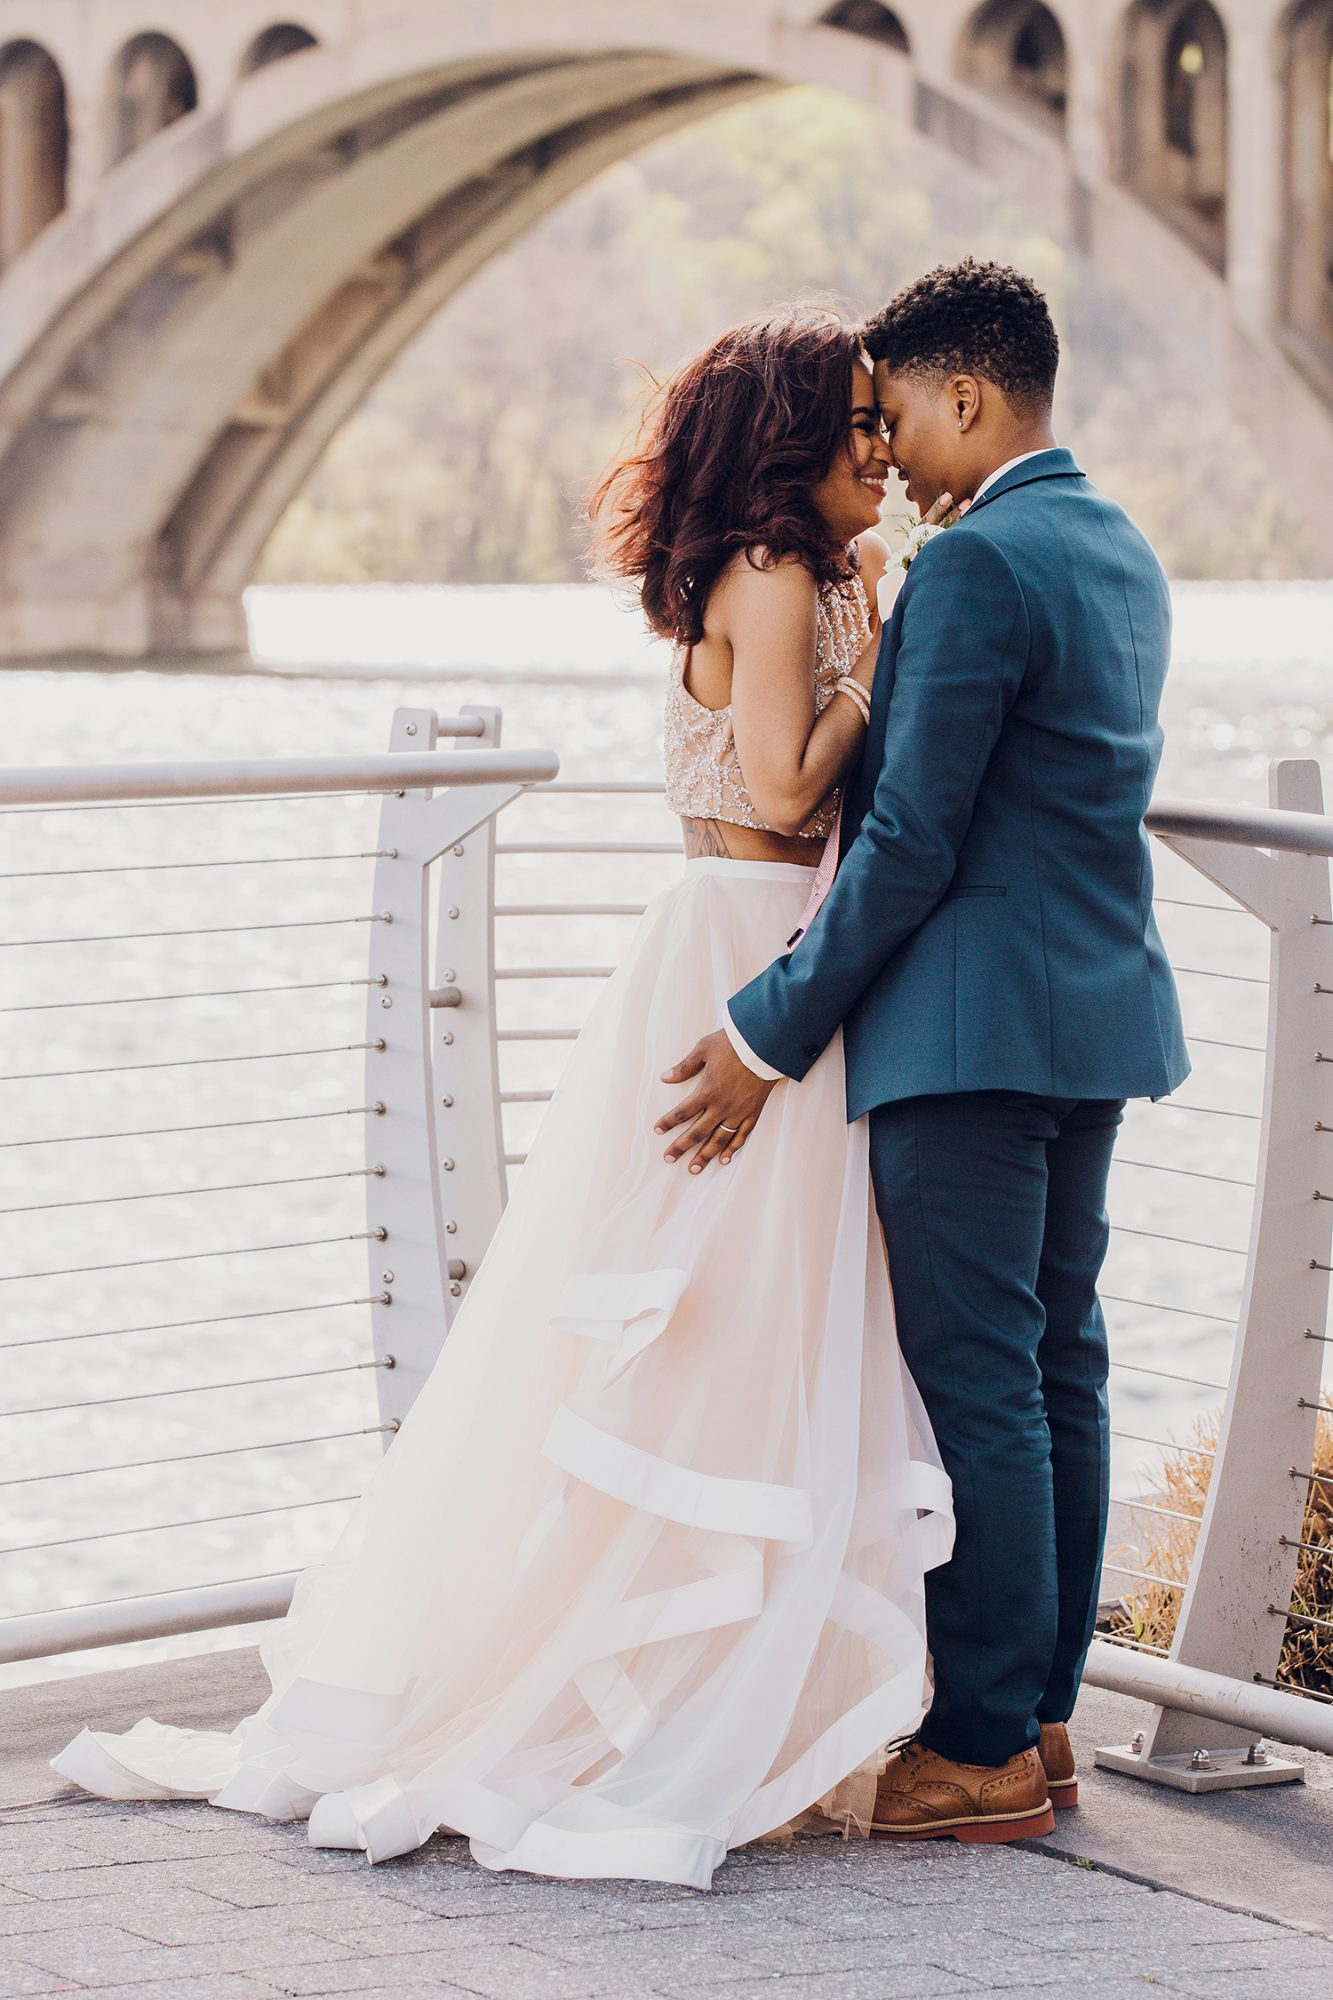 These brides touched noses as they soaked in the meaning of their big day.